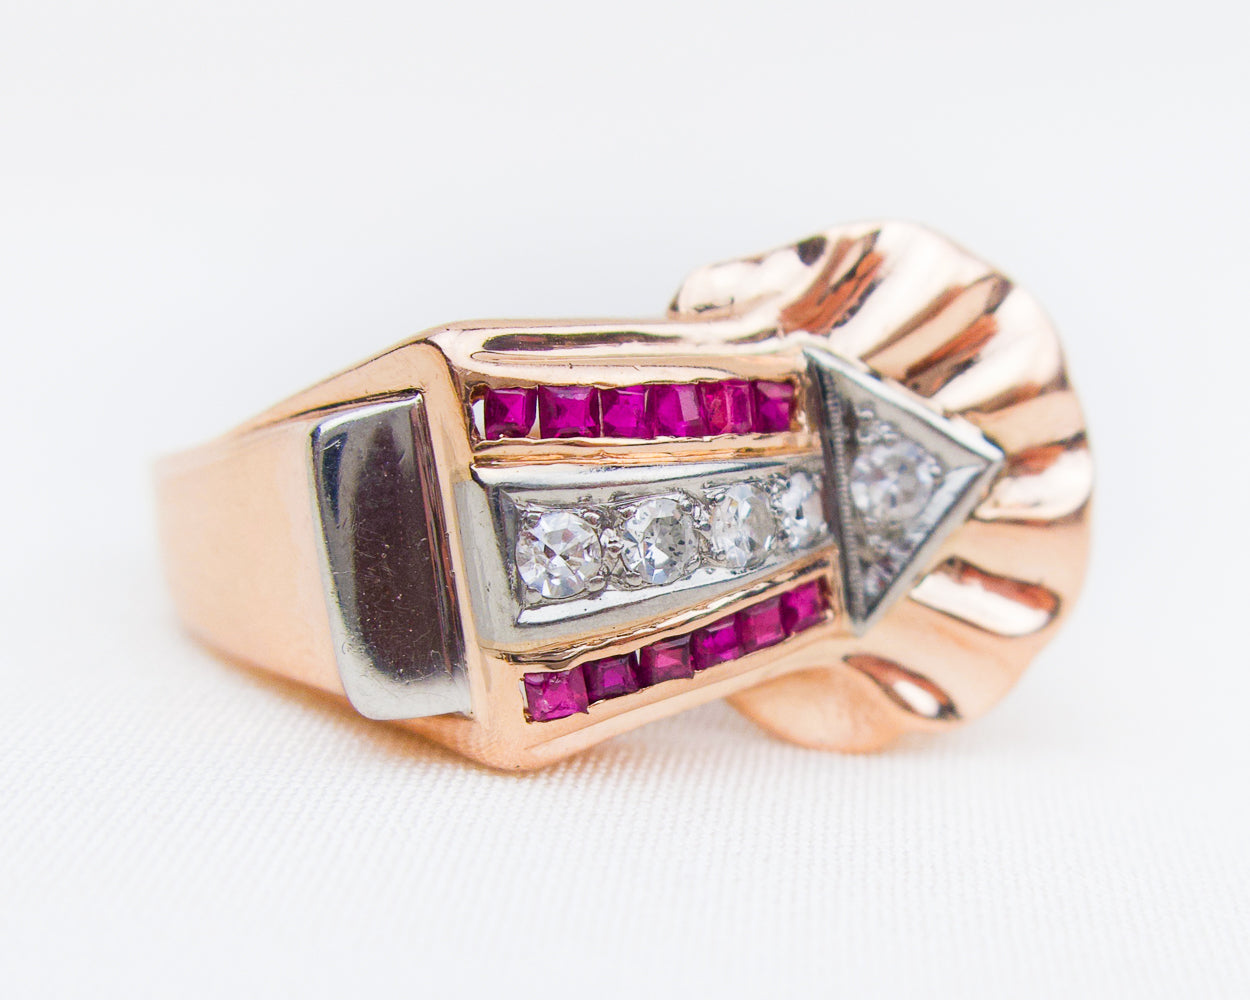 Retro Arrow Ring with Diamonds & Rubies